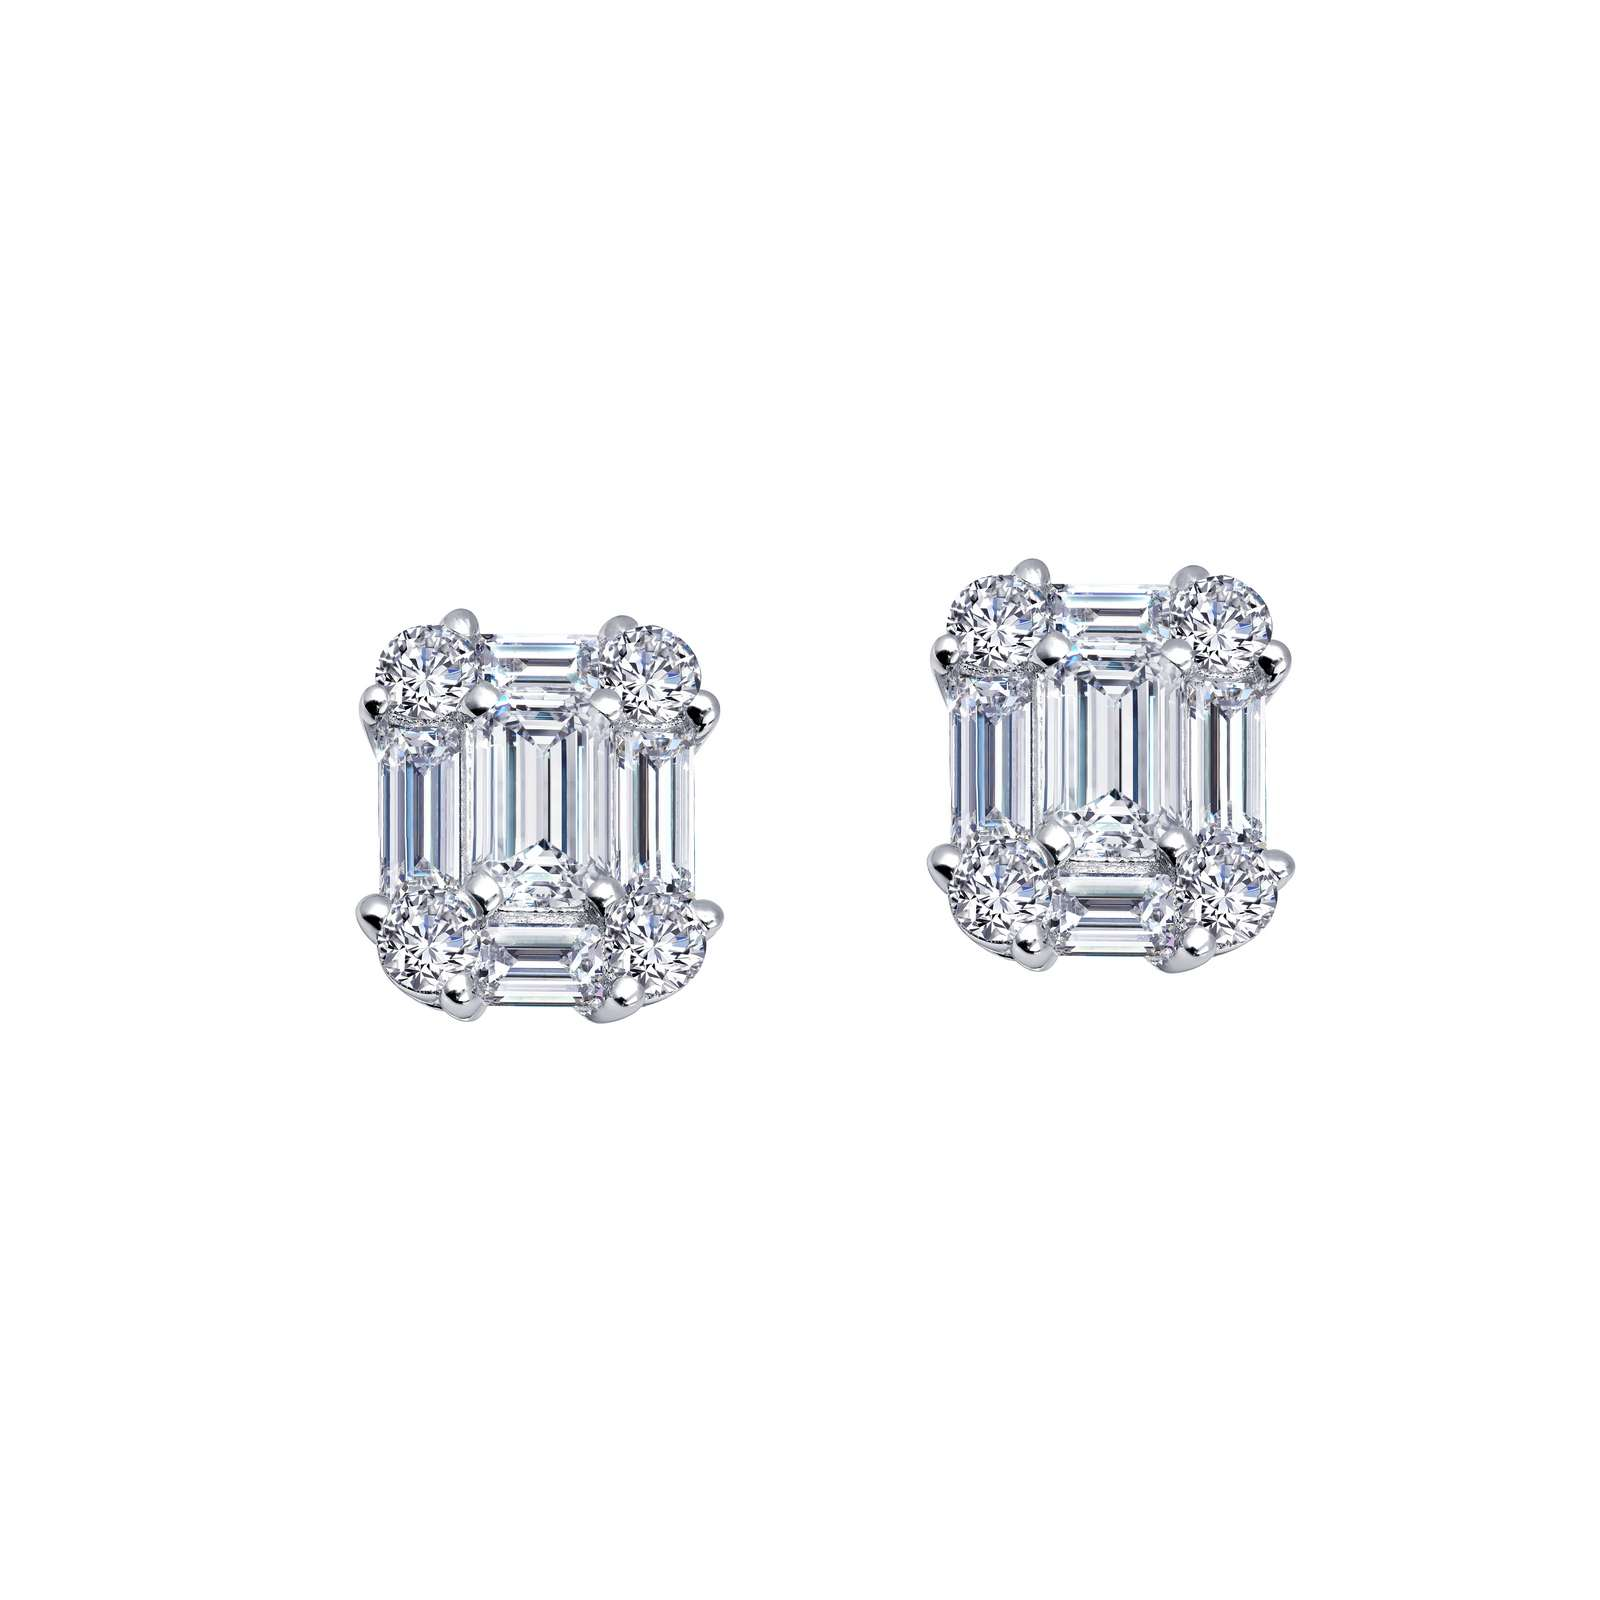 Classic Simulated Diamond Platinum Earrings by Lafonn Jewelry